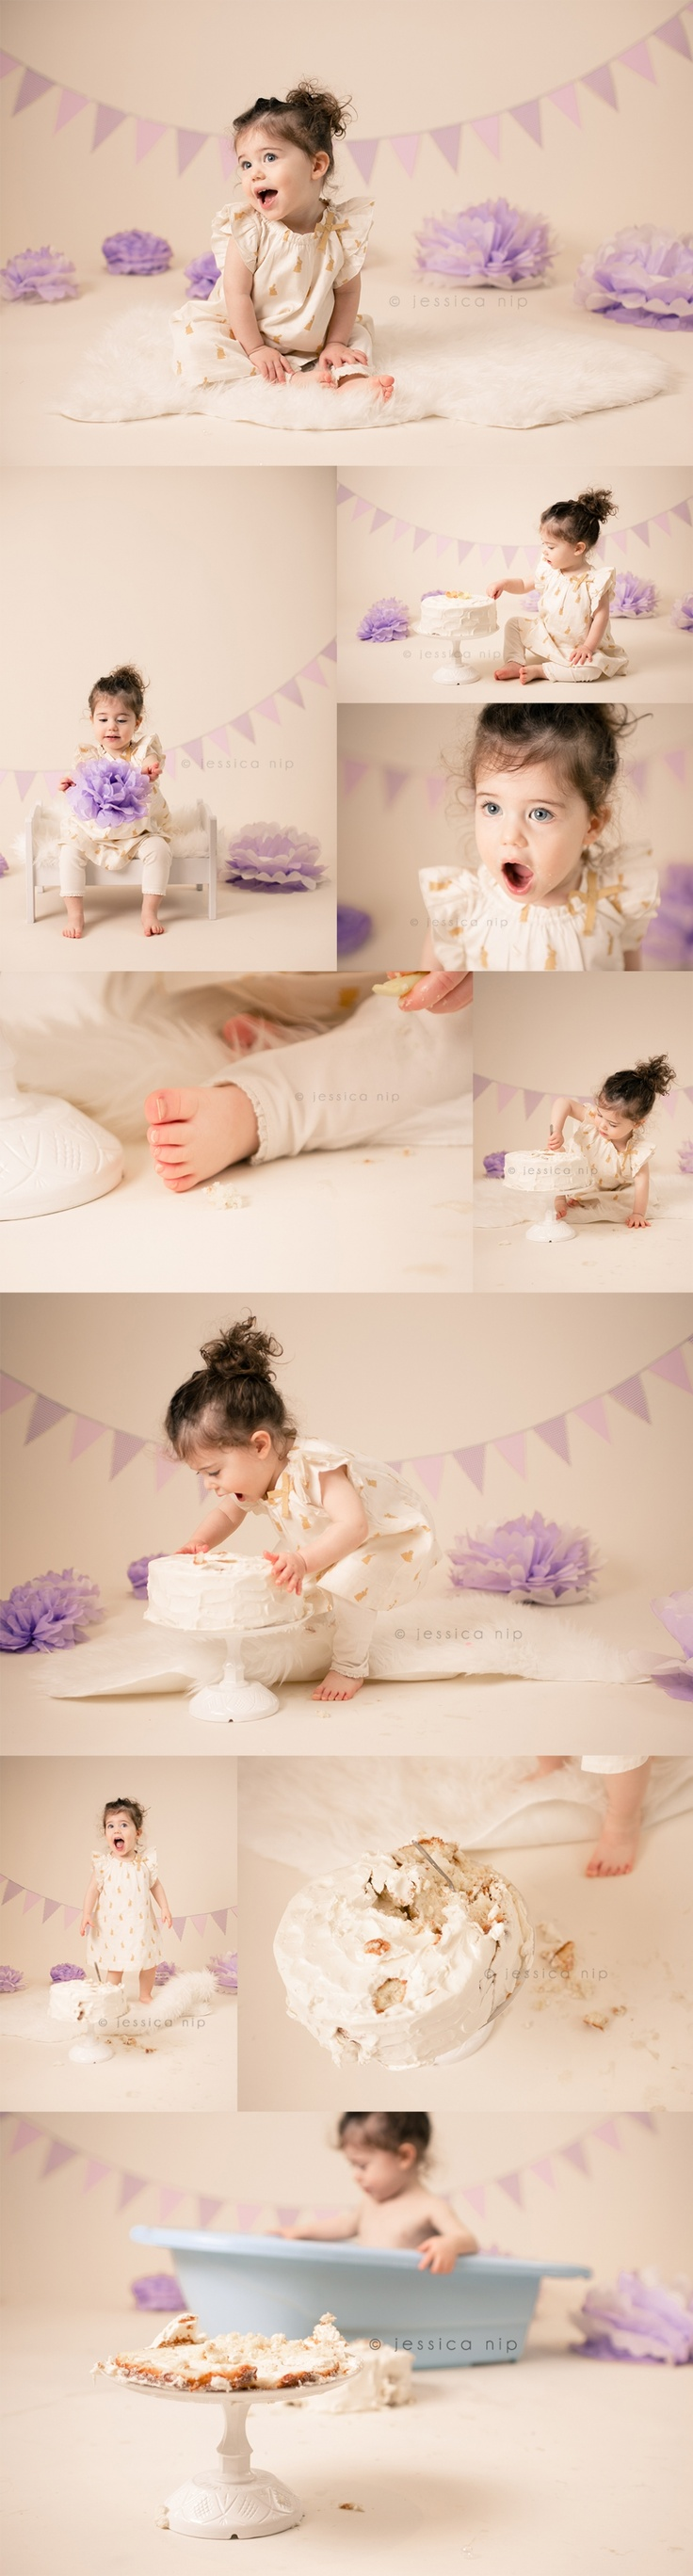 2 year old cake smash session - neutrals and lilacs